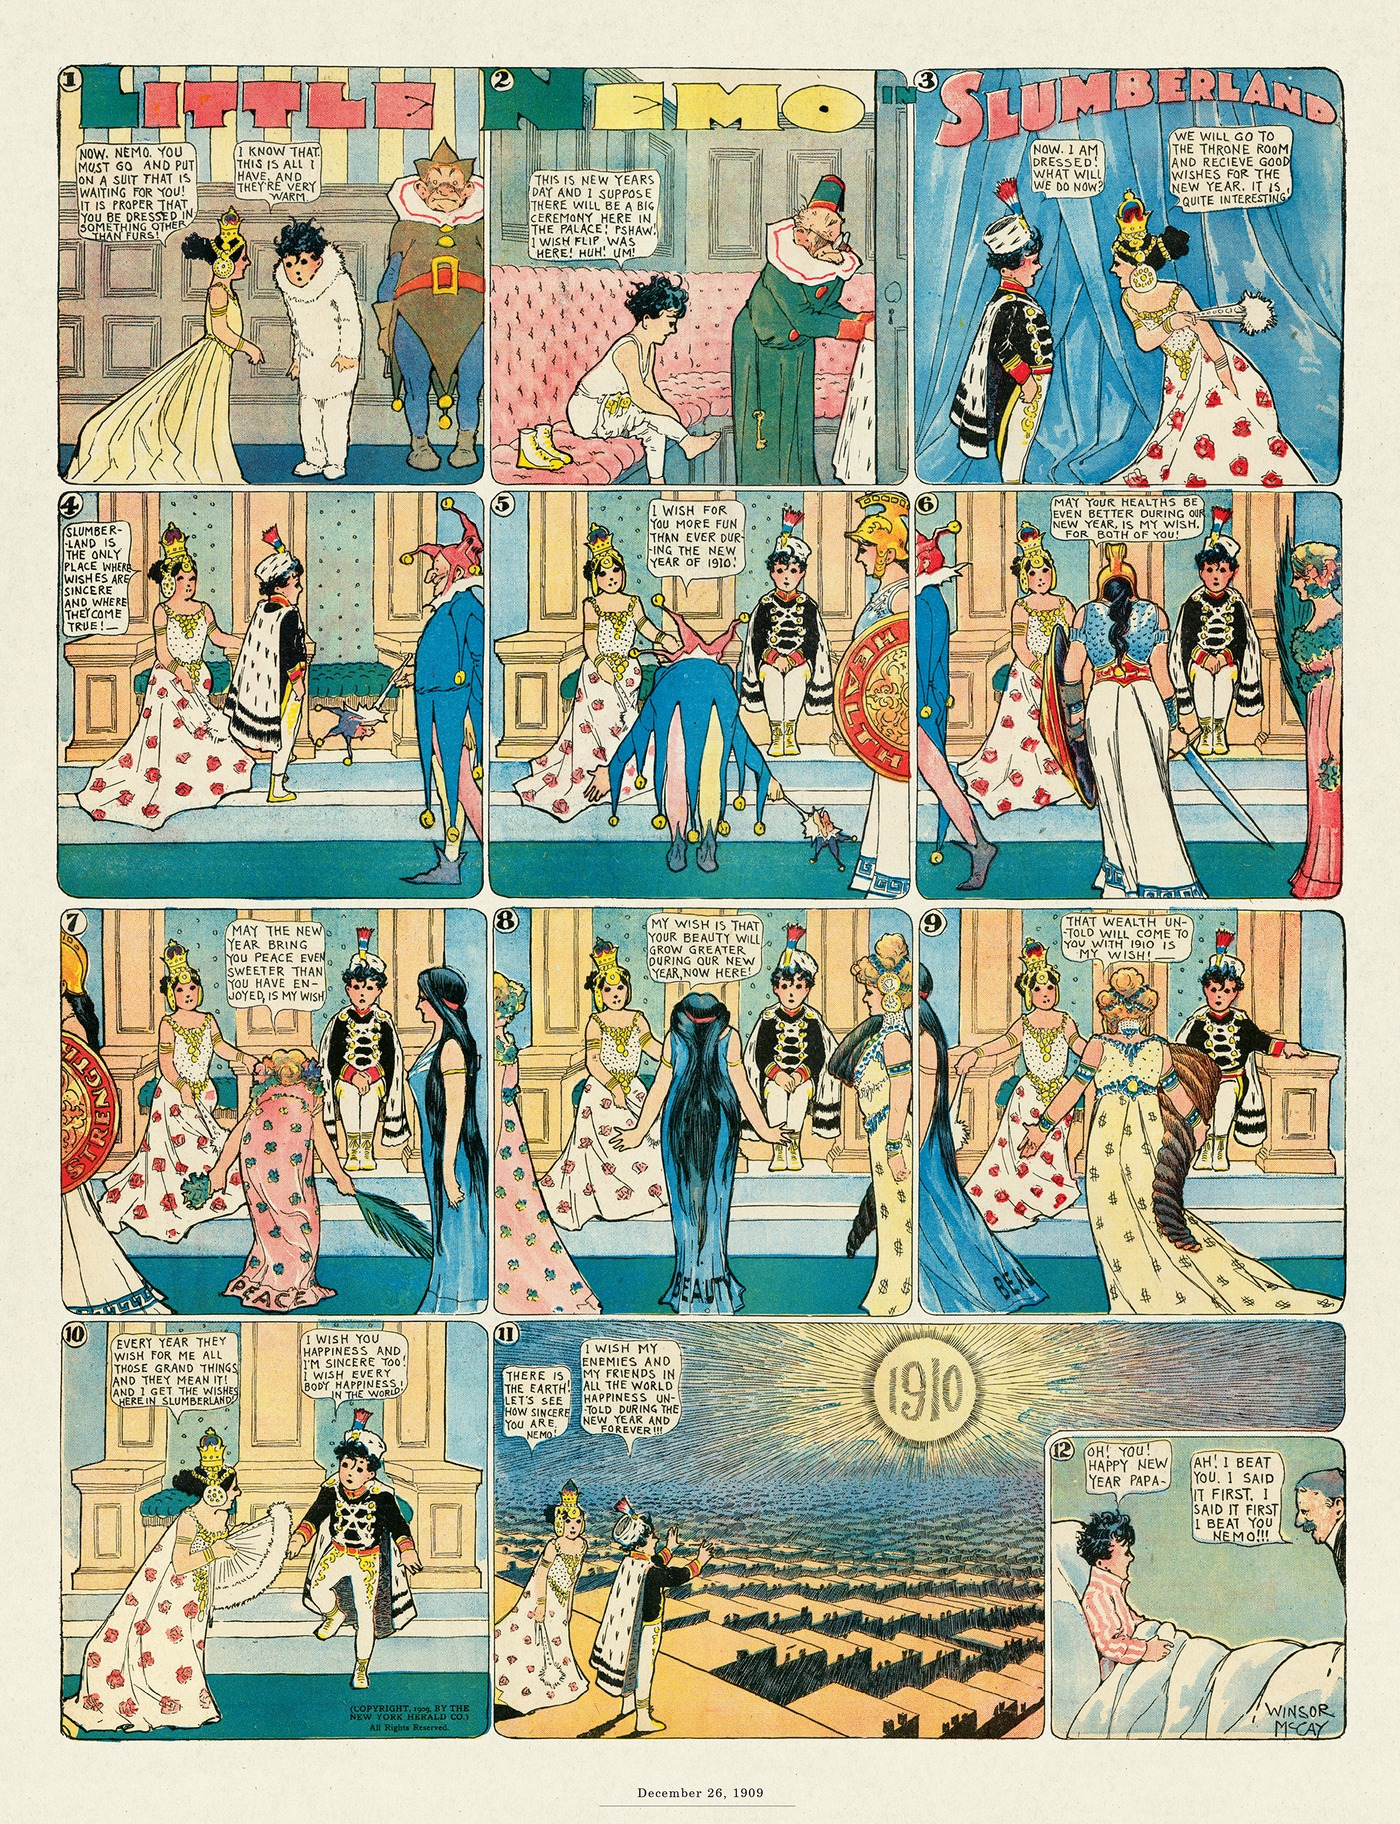 Little Nemo by Winsor McCay on Tue, 04 May 2021